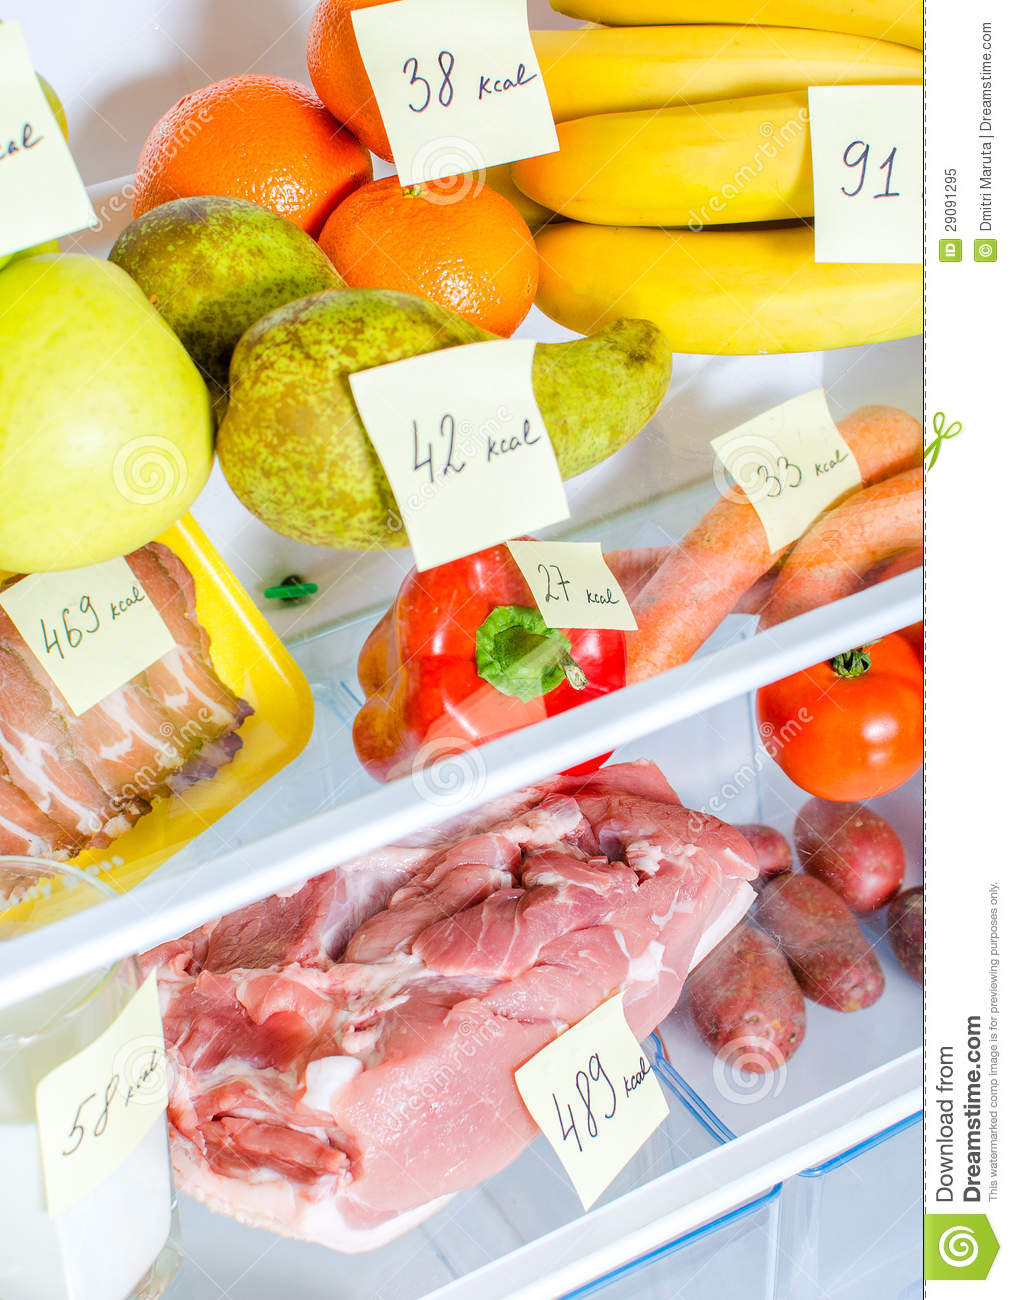 Open Fridge Full Of Fruits Vegetables And Meat Royalty